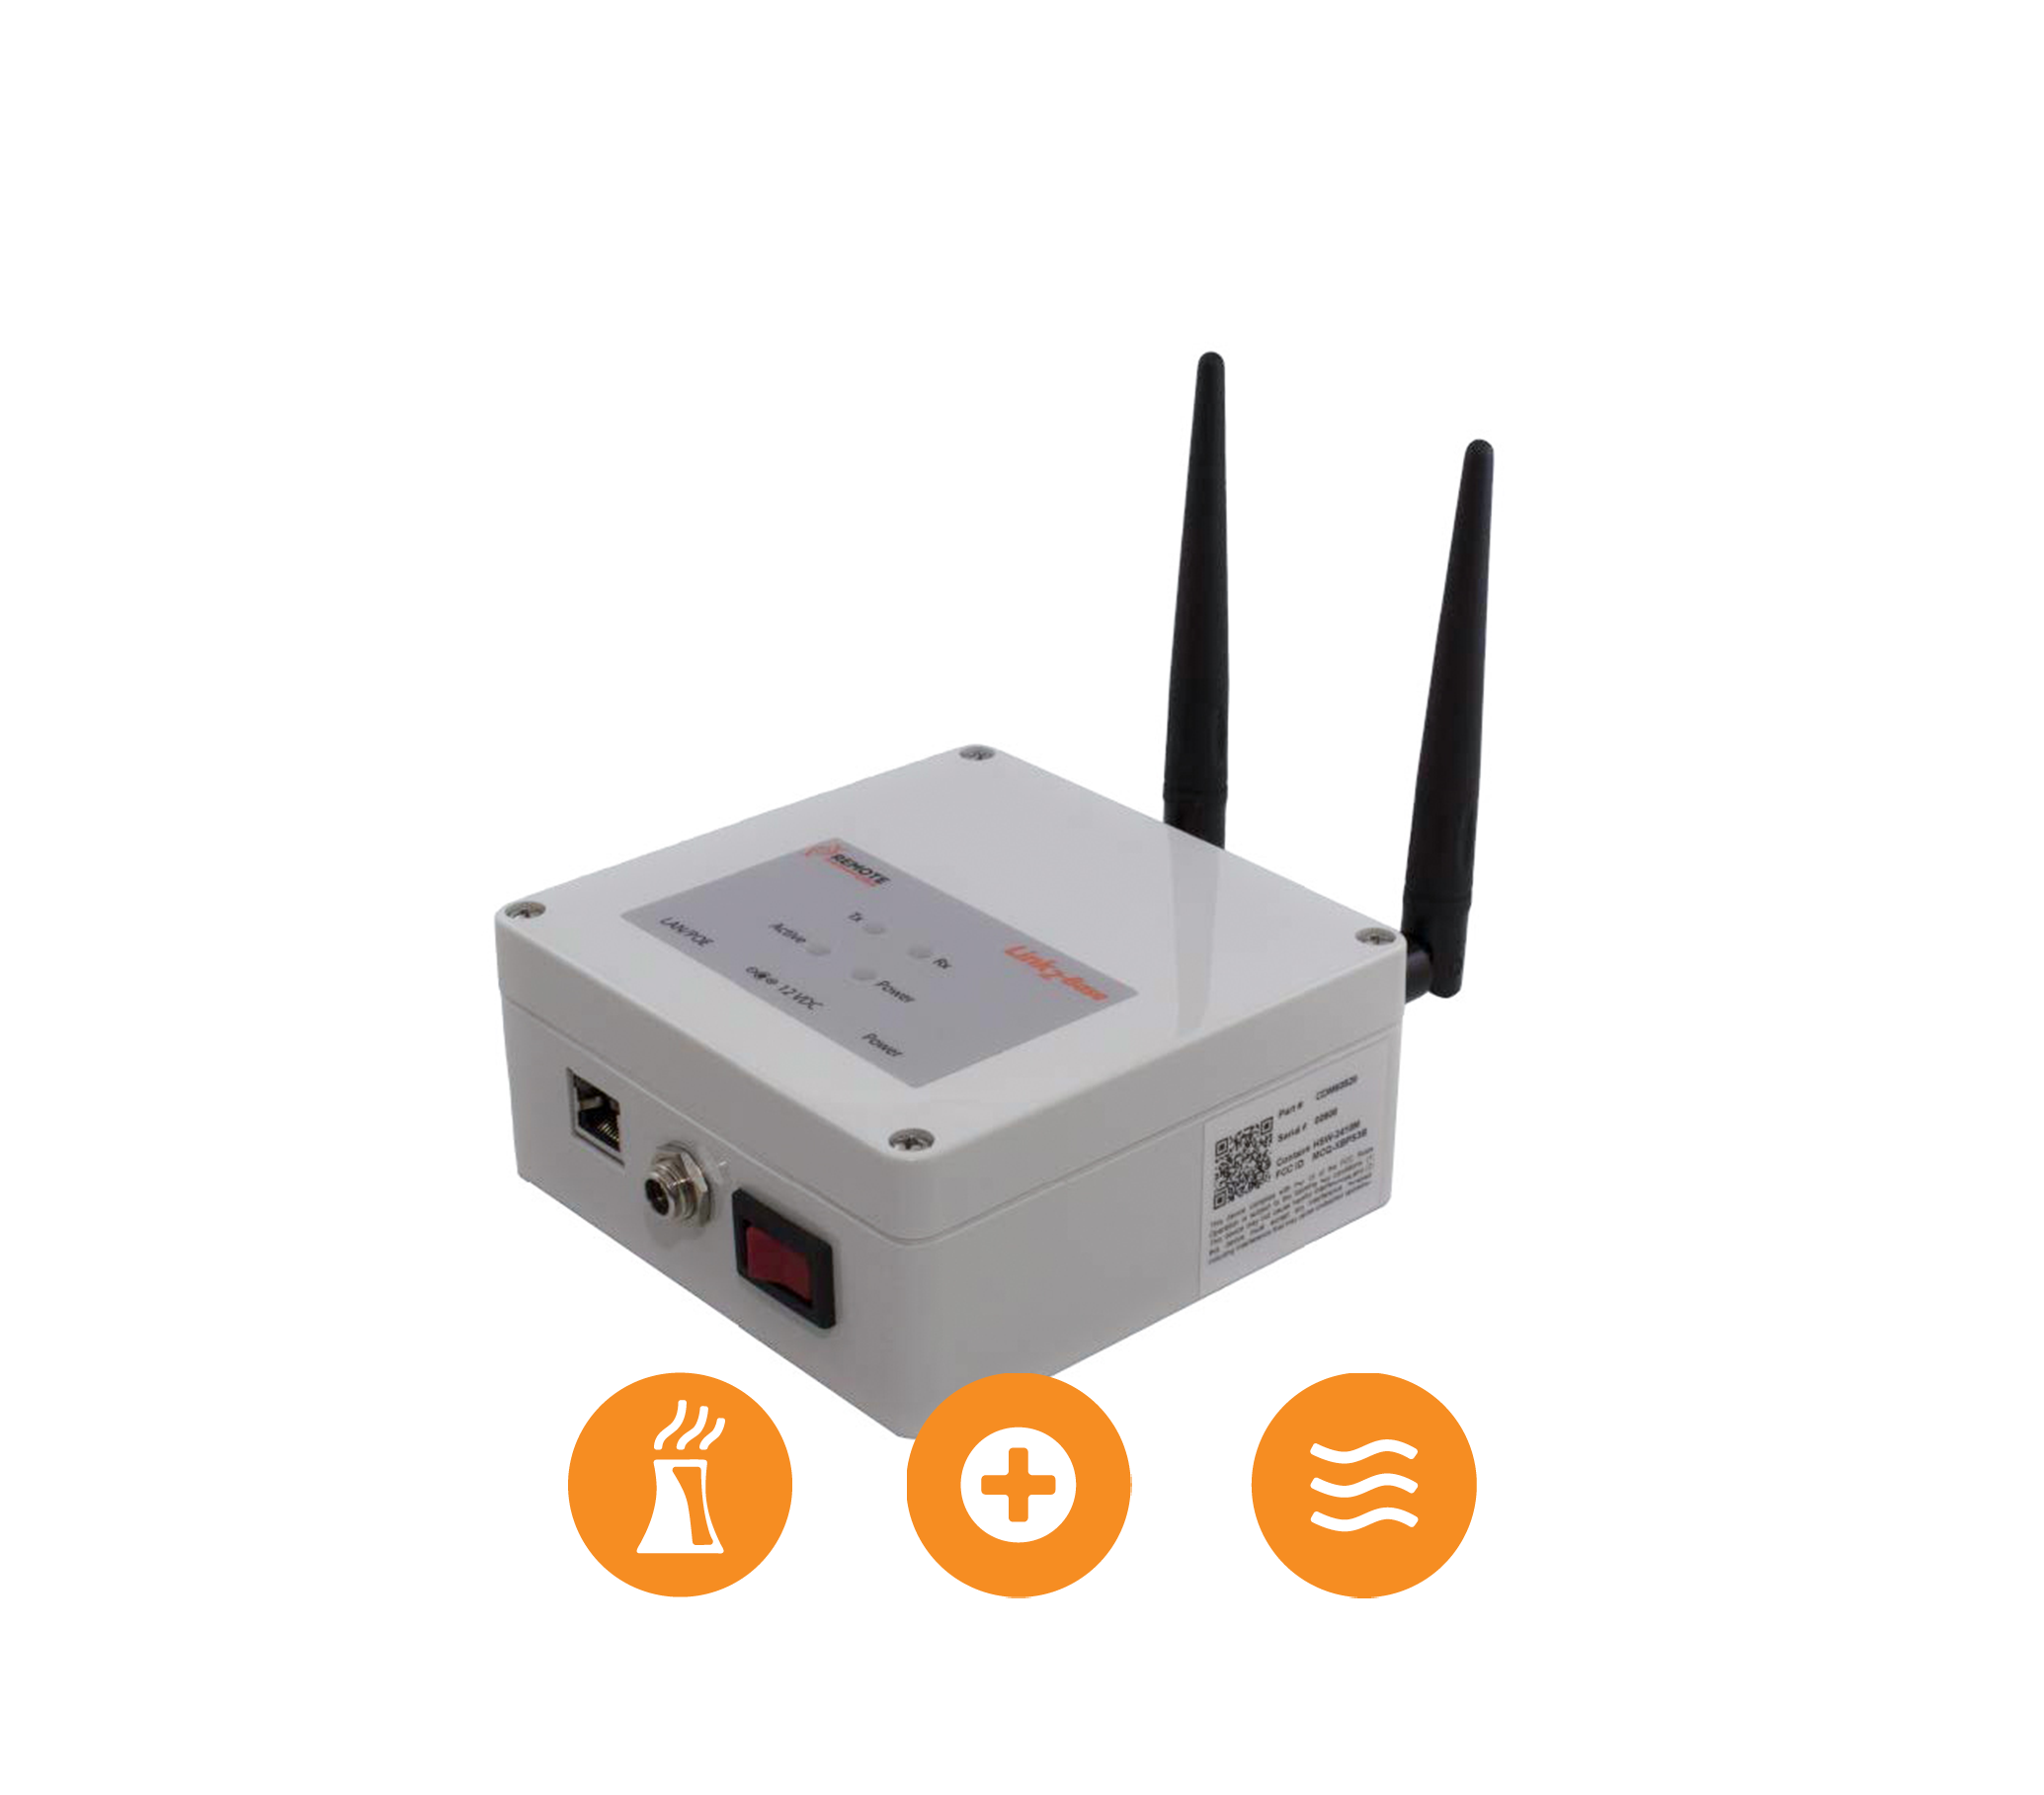 Link2-Base - The Link2-Base is a wireless base radio that combines an RF transceiver with an Ethernet/LAN connection to give IP networking capabilities to in-field wireless devices, sensors and…